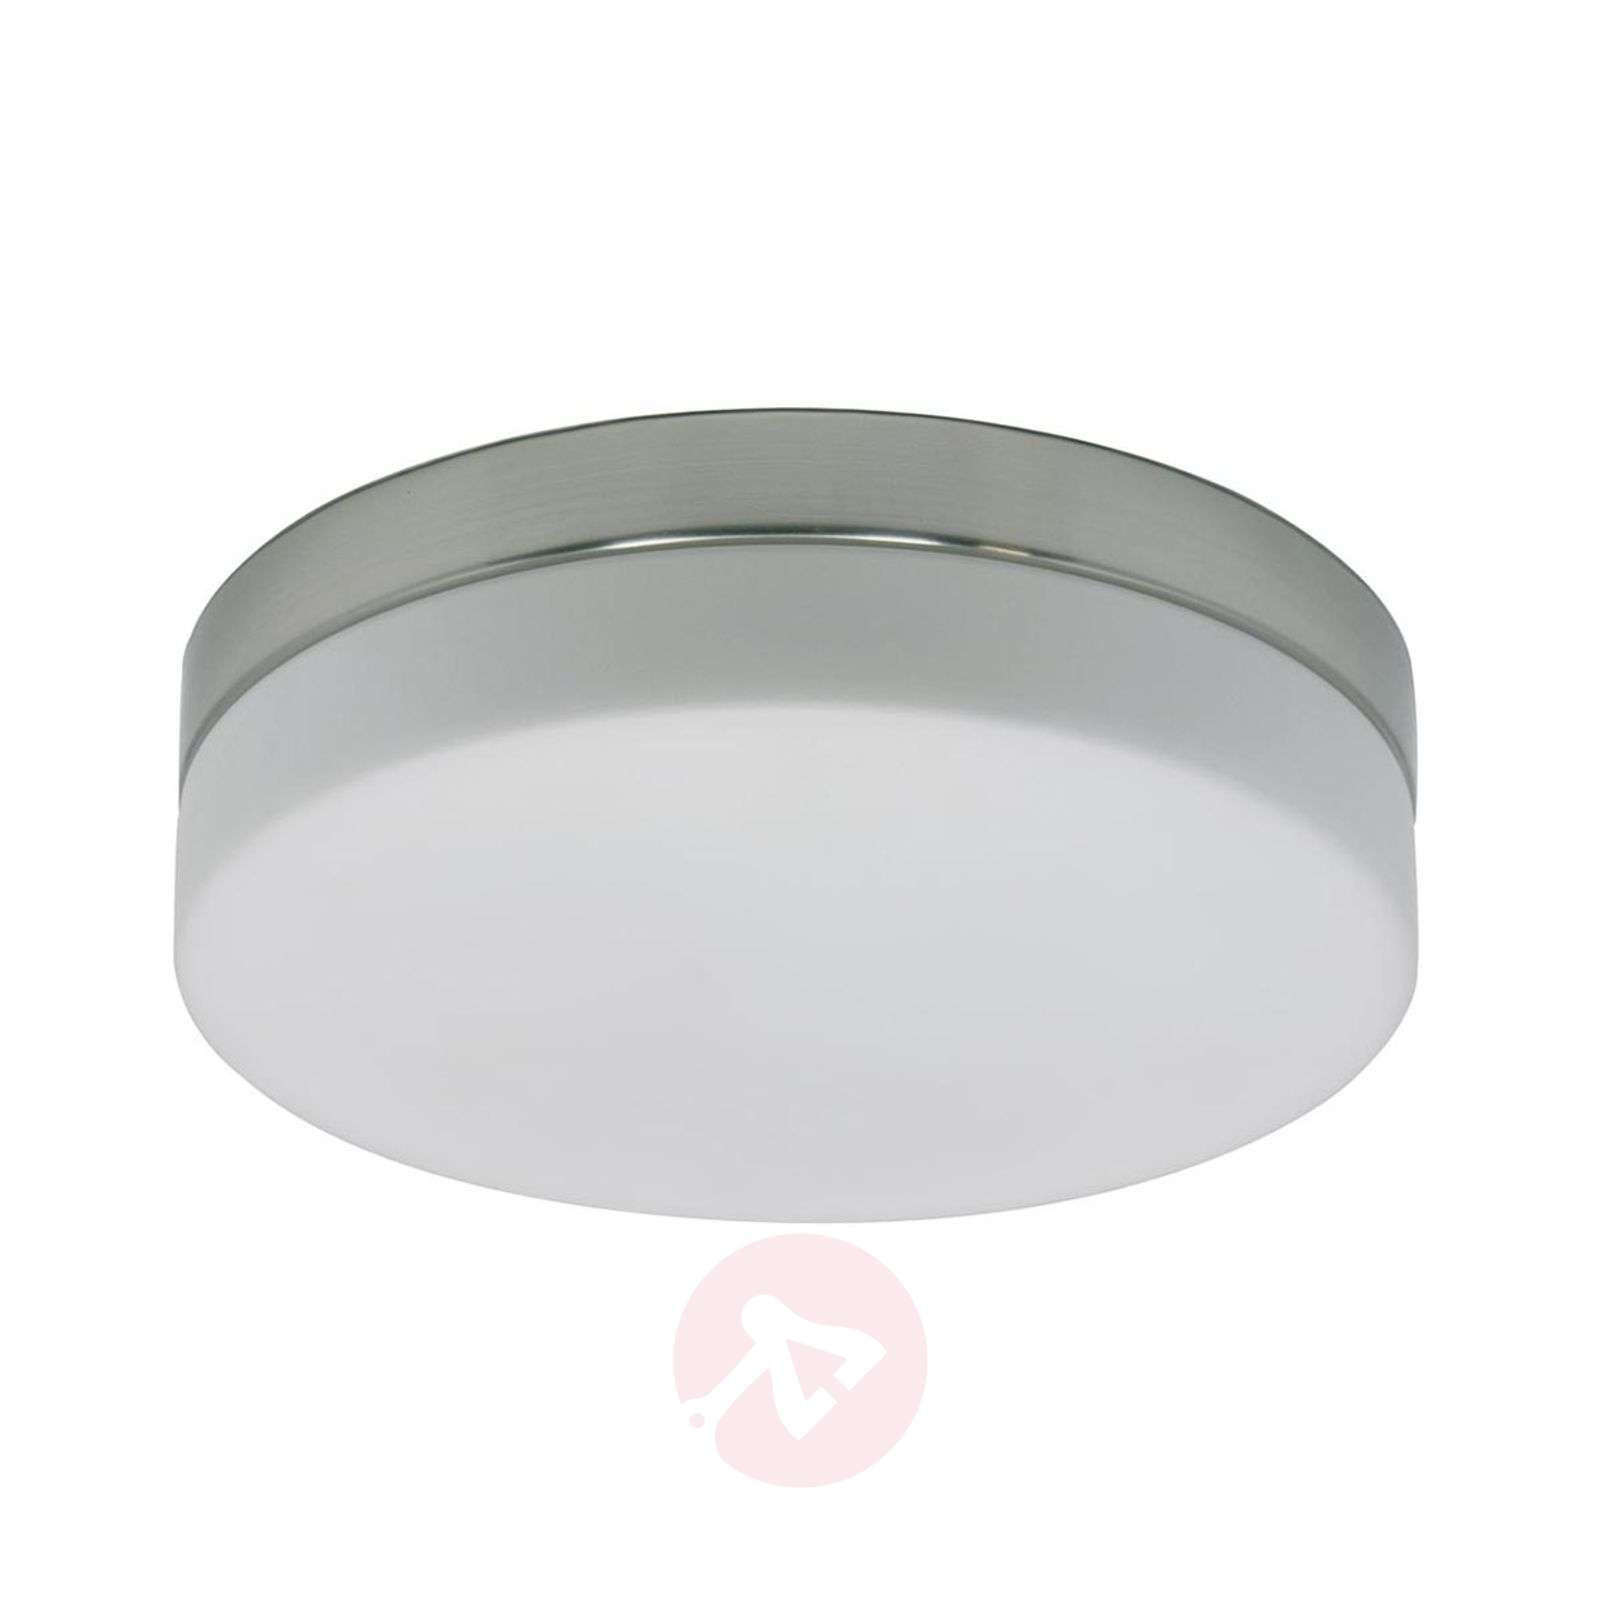 Babylon – lampa sufitowa LED do łazienki 23 cm-8509761-01